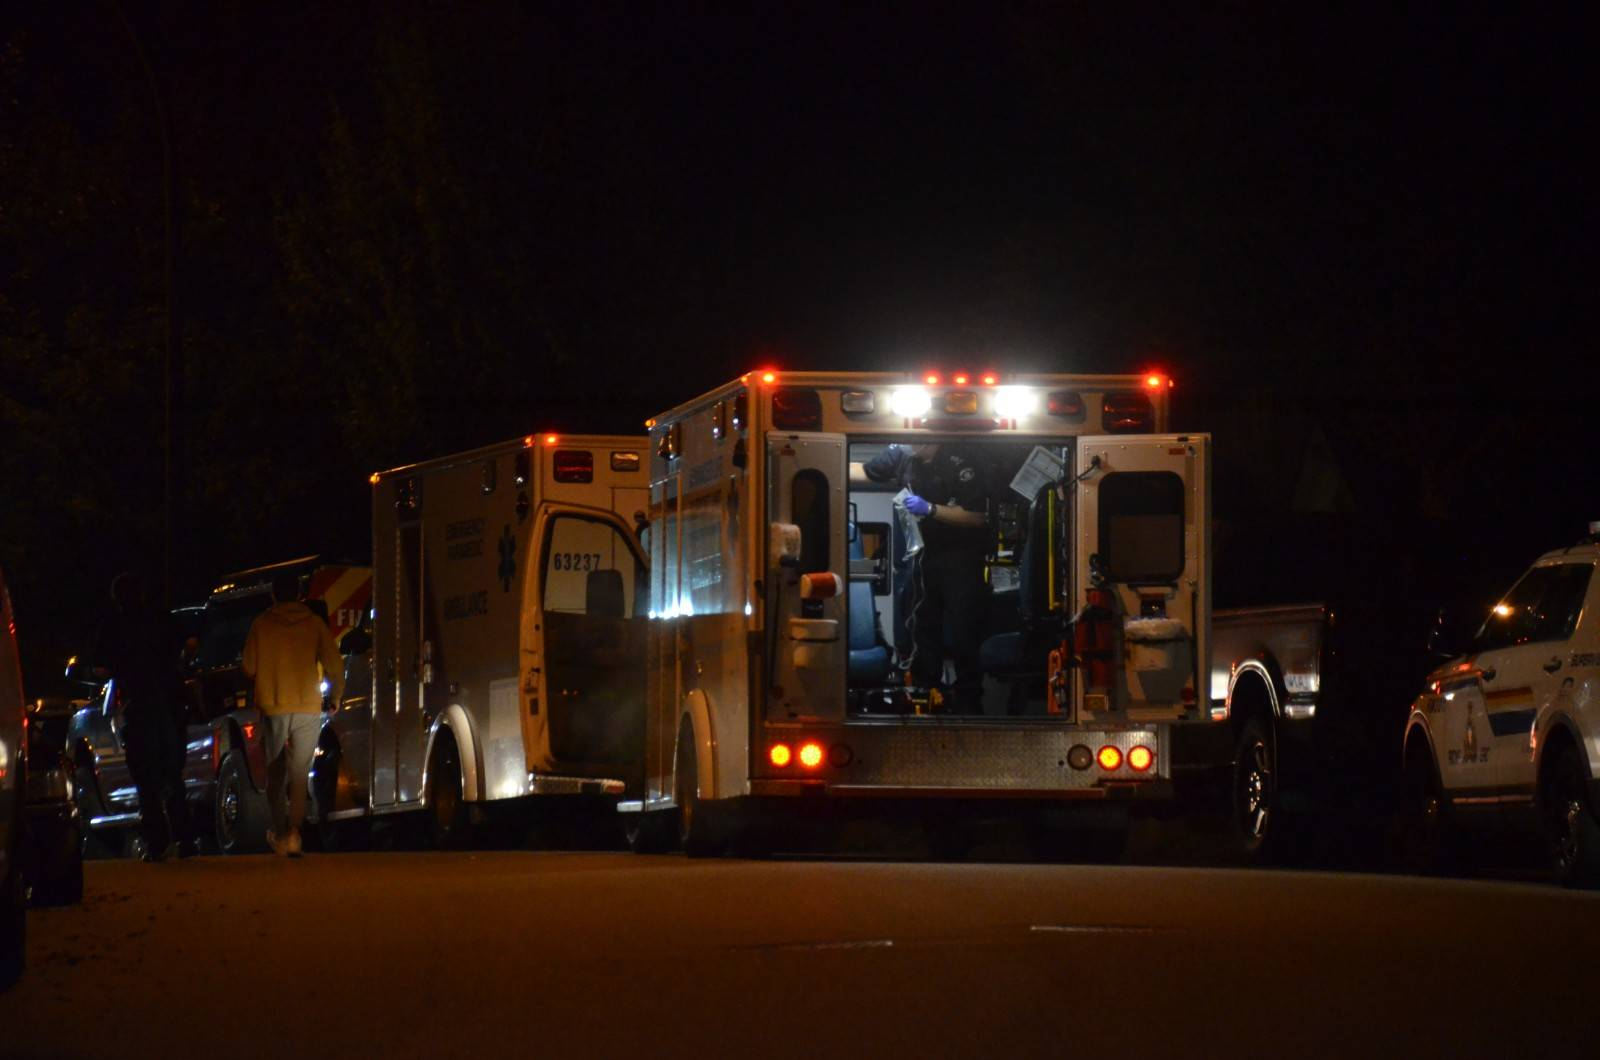 RCMP were called to an assault in the 23700-block of 110 Ave in Maple Ridge Tuesday, Oct. 20, 2020. (Curtis Kreklau/Special to The News)